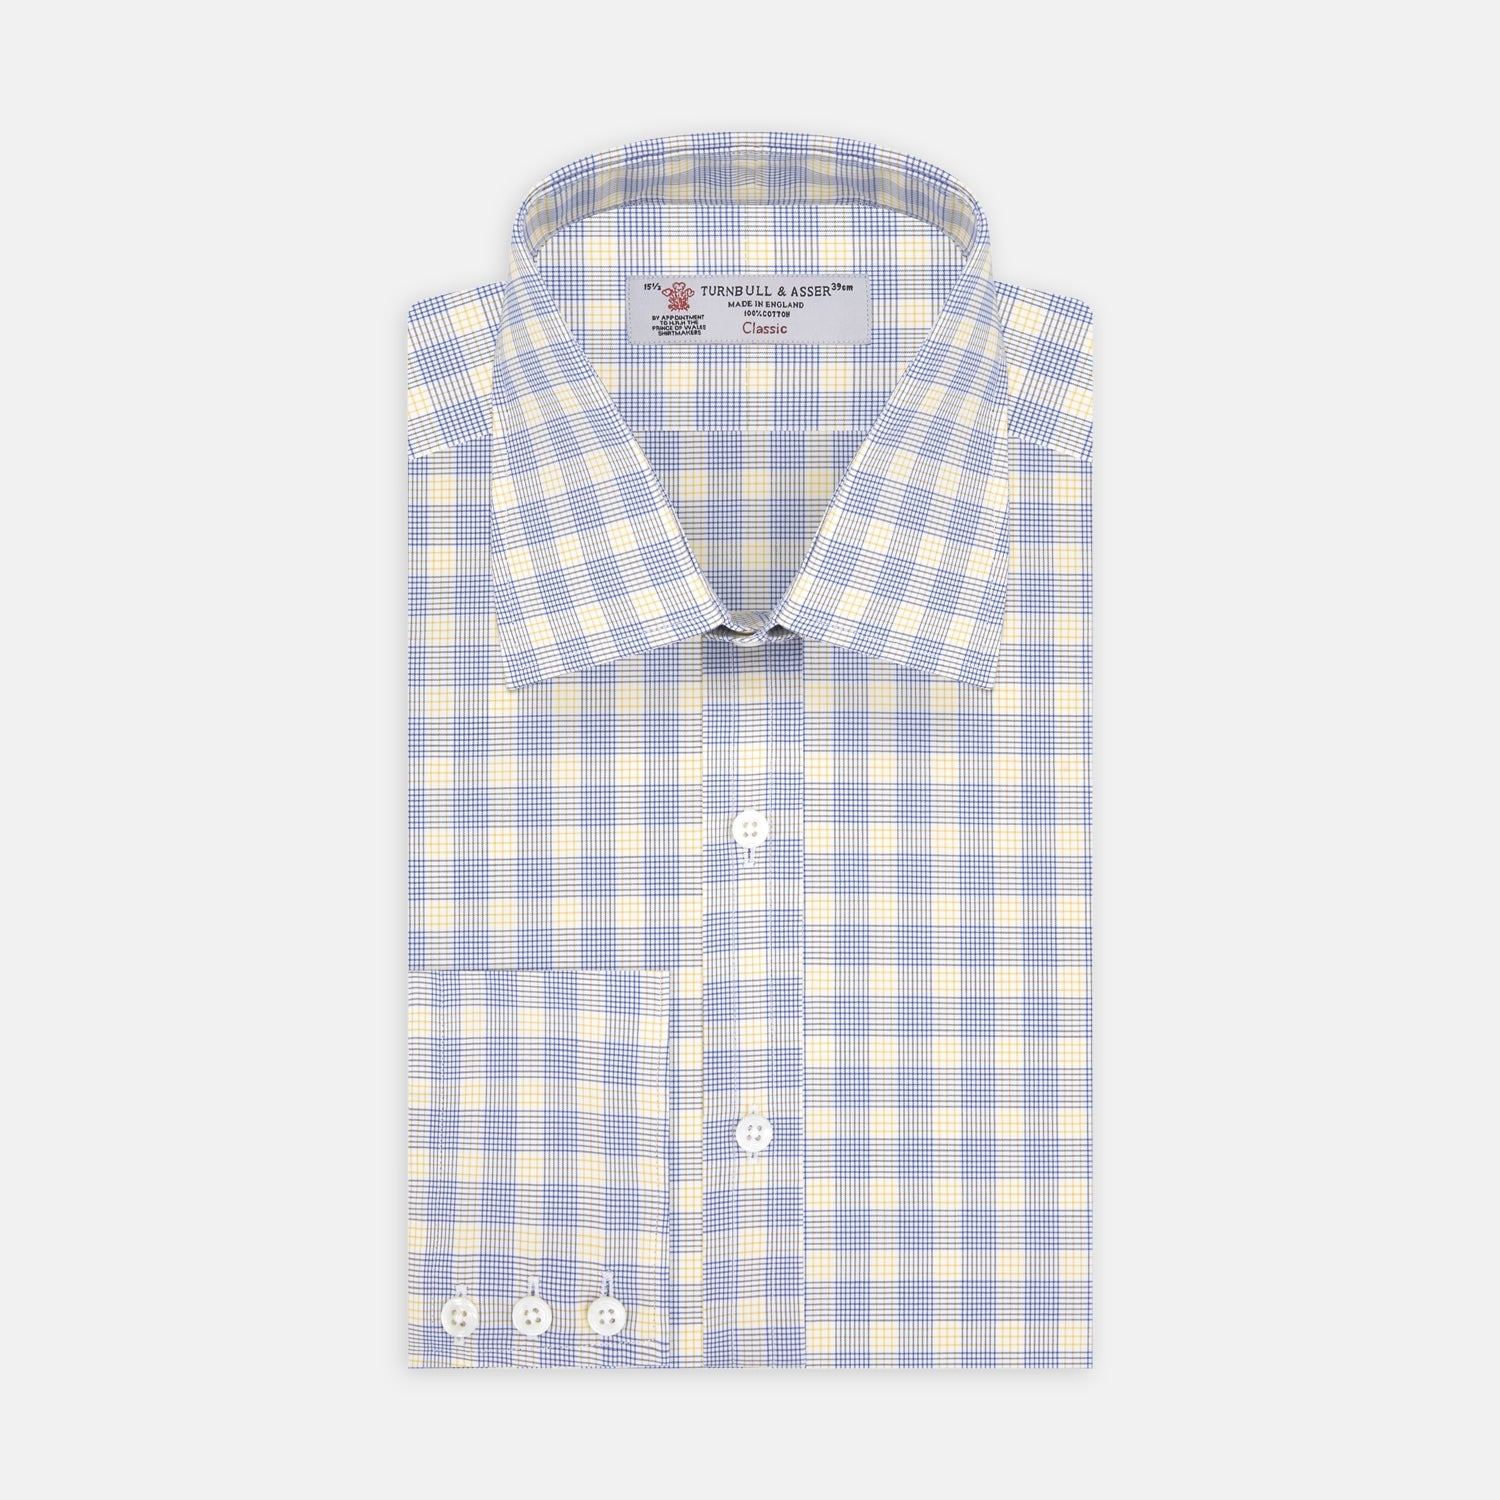 Blue and Yellow CrossCheck Shirt with T&A Collar and 3-Button Cuffs